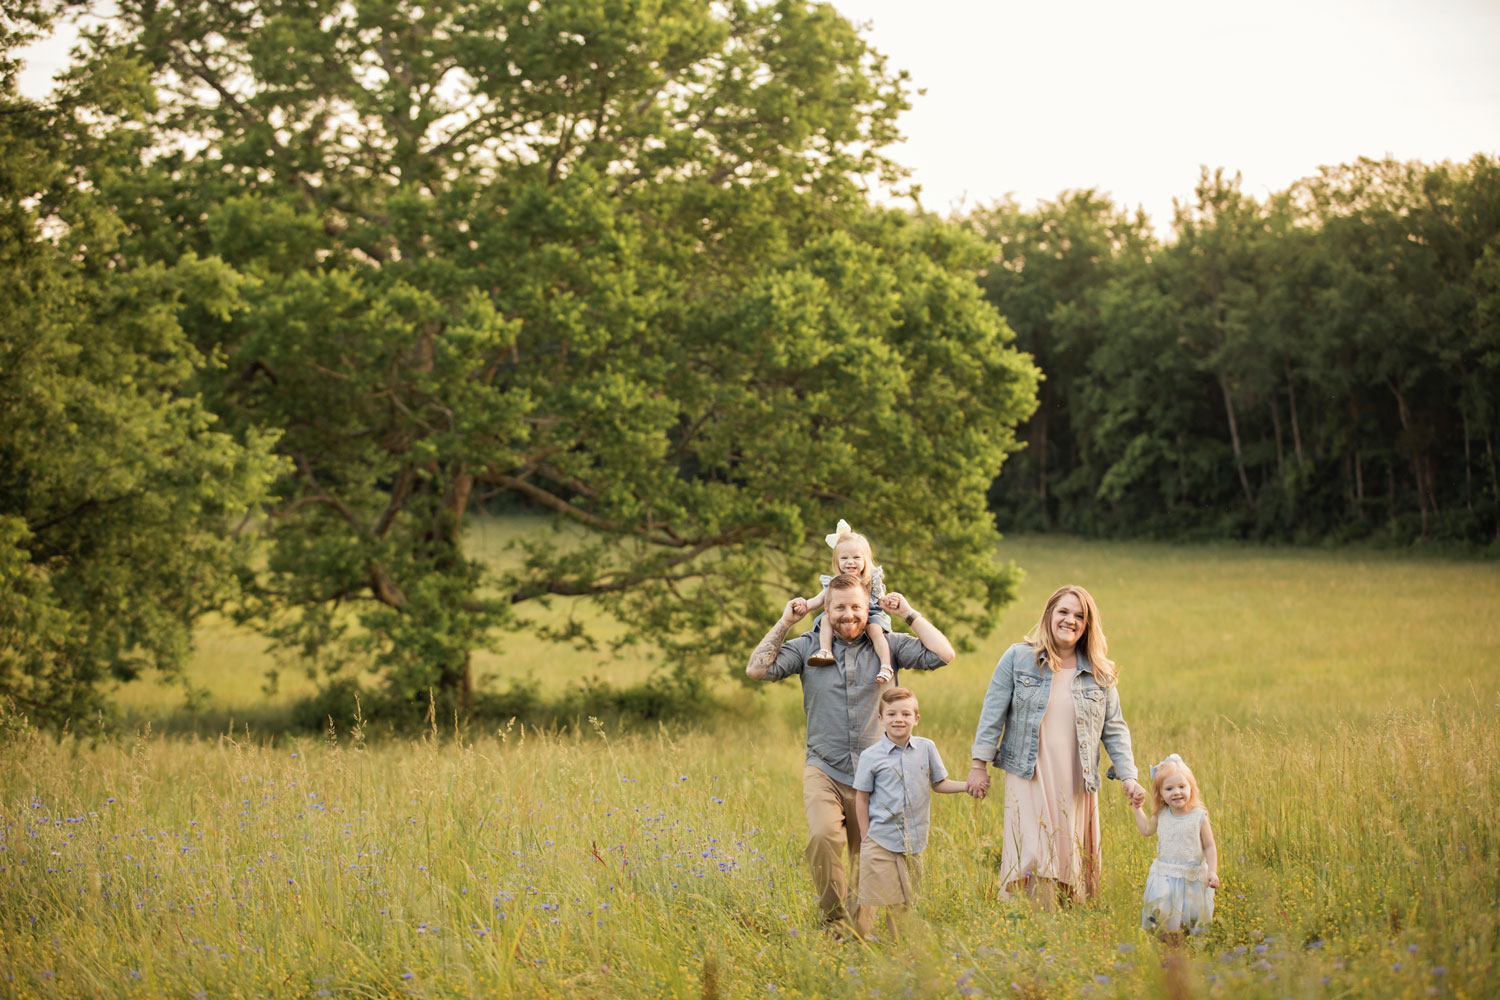 Knoxville family walks through grassy field towards photographer.